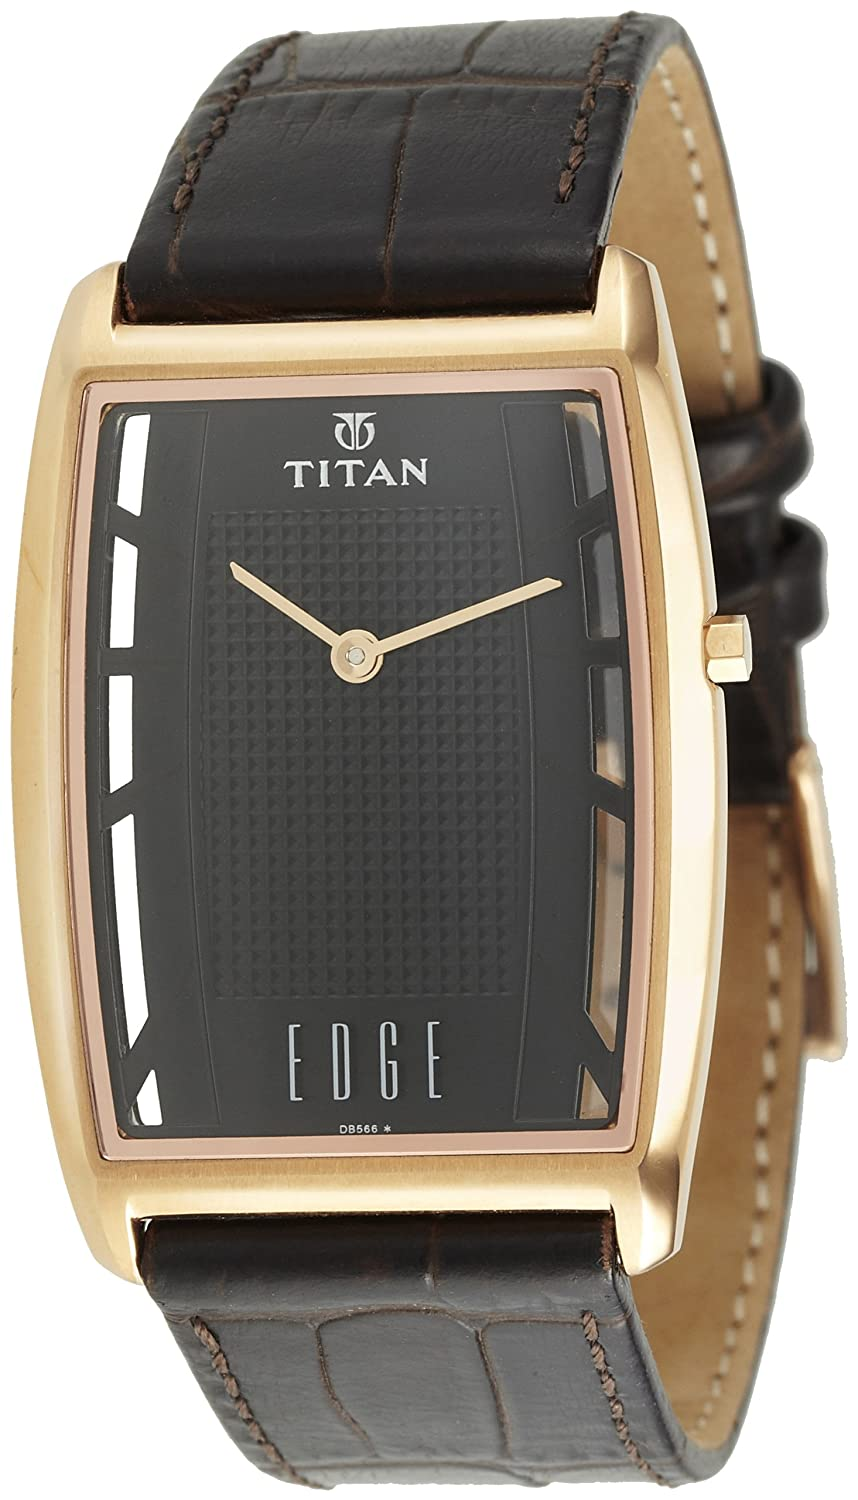 reasons watches why ceramic an blog watch your titan gives edge n